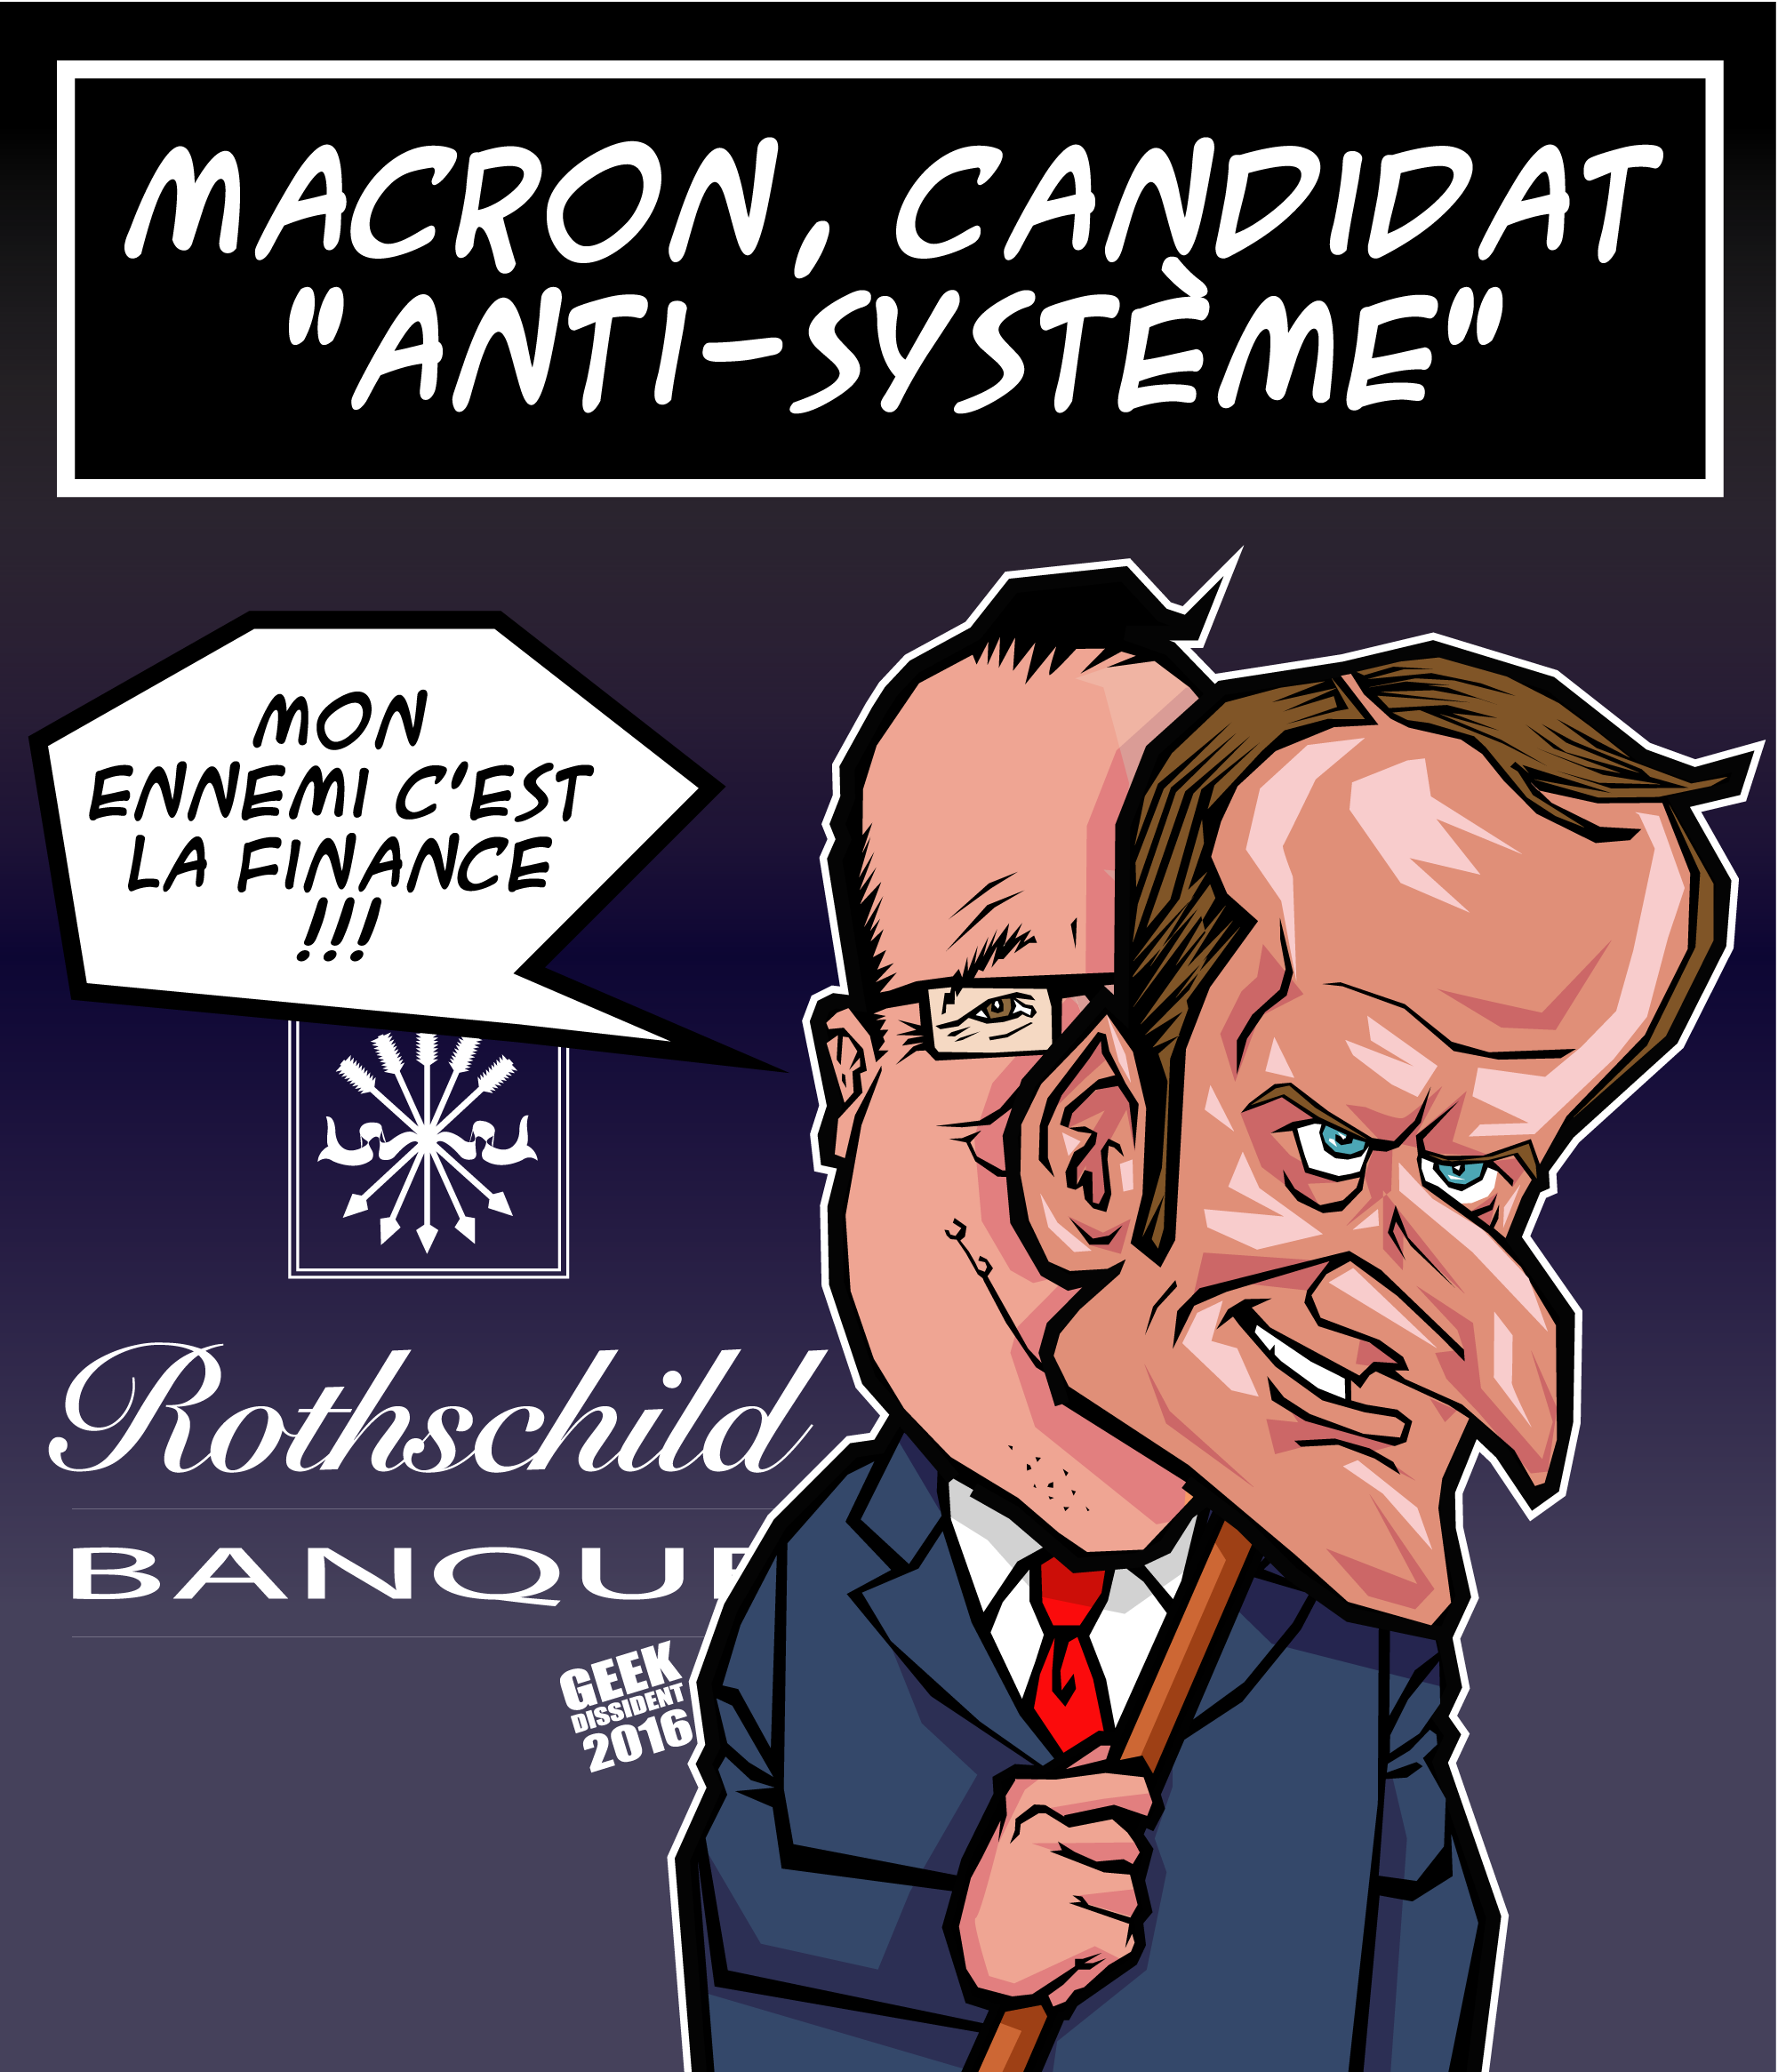 GD_dessin_hollande_macron-candidat-anti-systeme